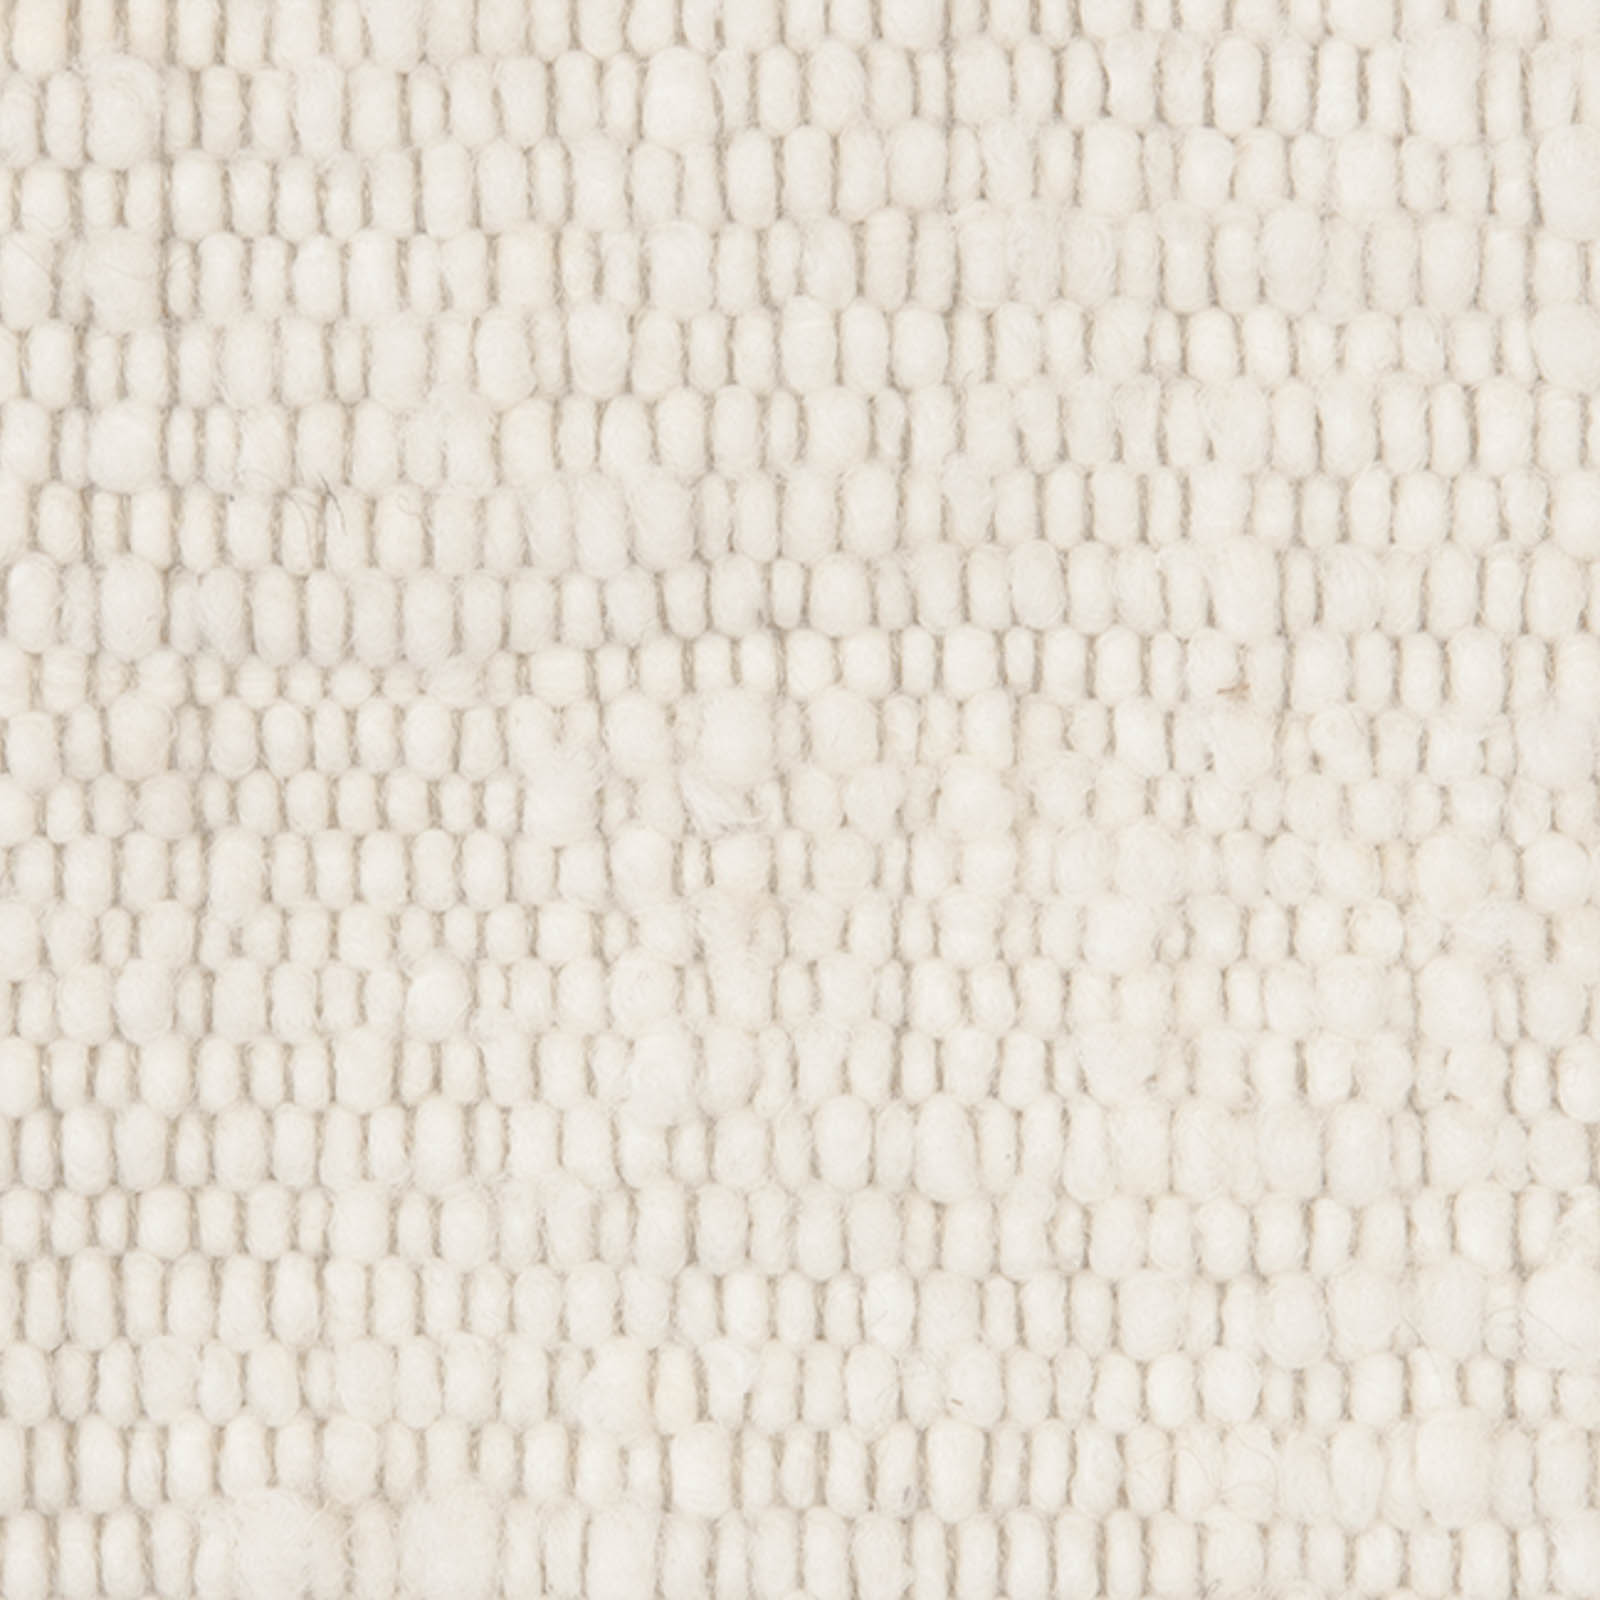 Catania Rugs 001 in White